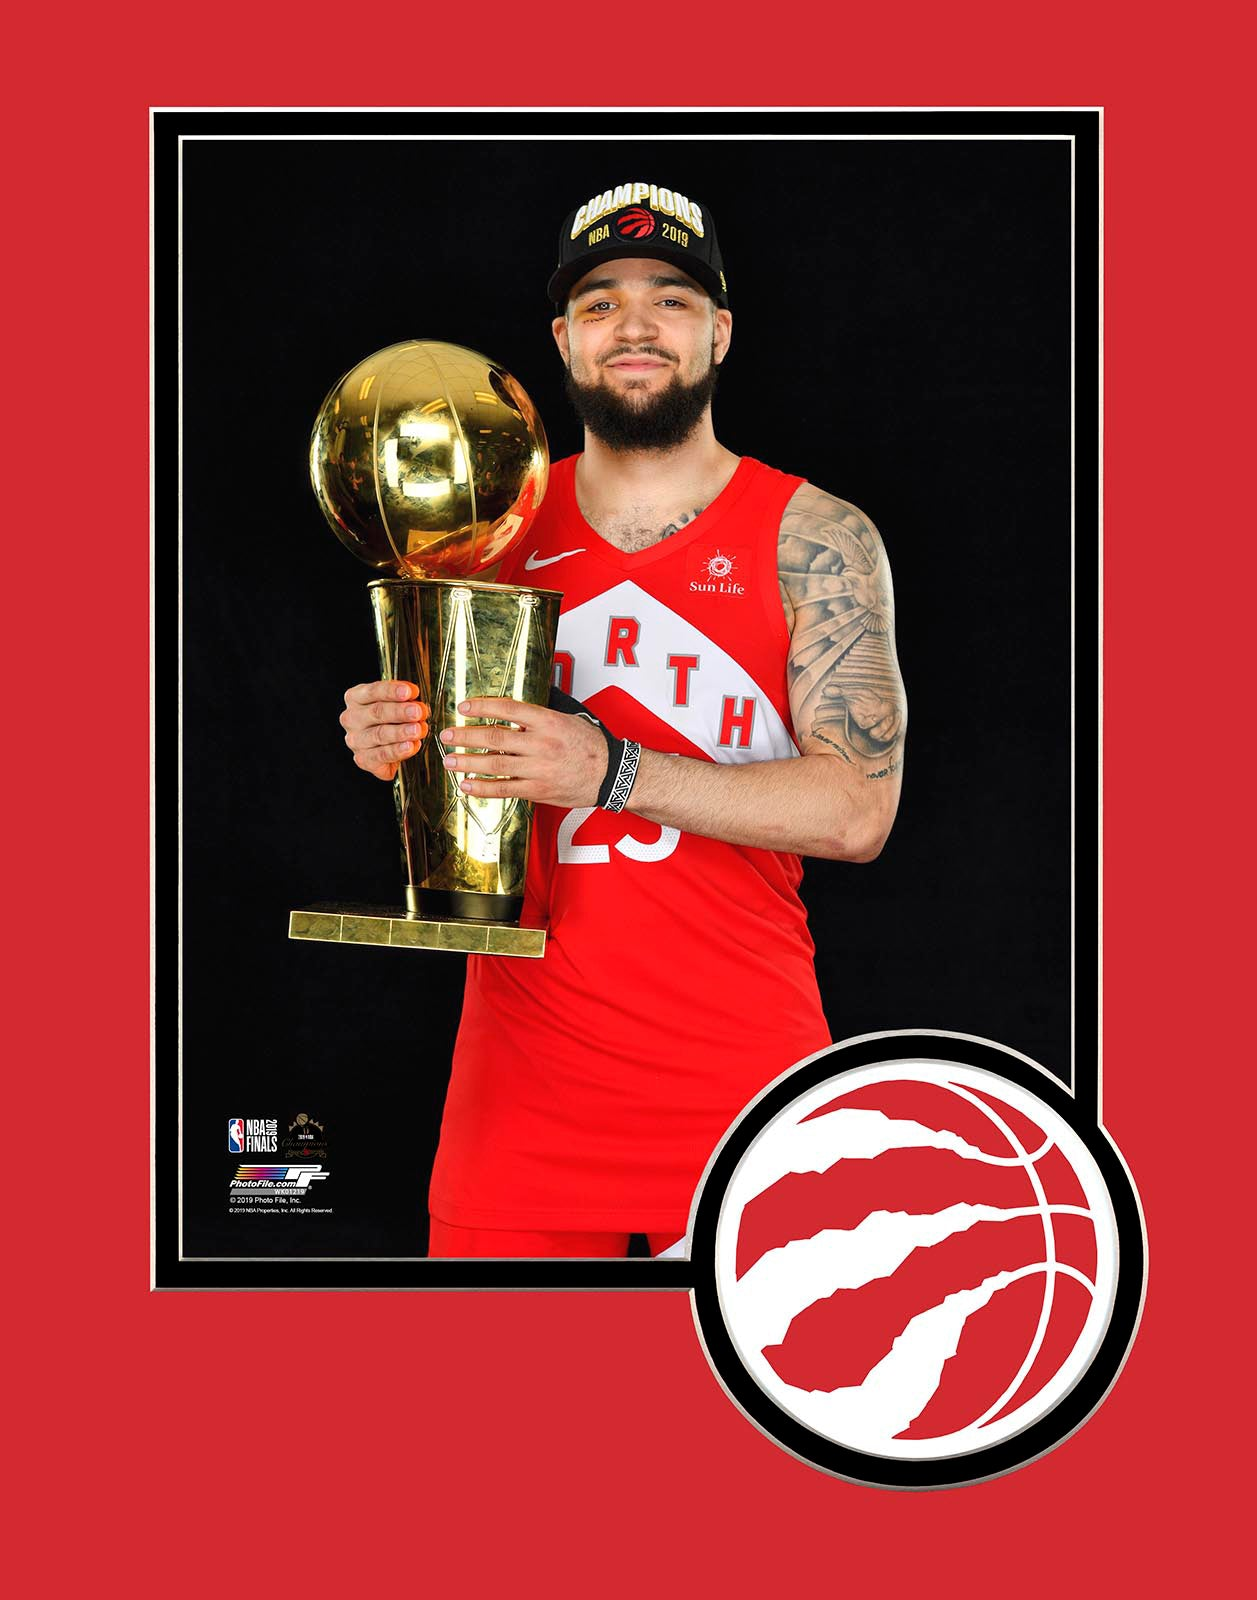 Raptors 2019 NBA Champs Fred VanVleet Trophy Matted 8x10 Photo